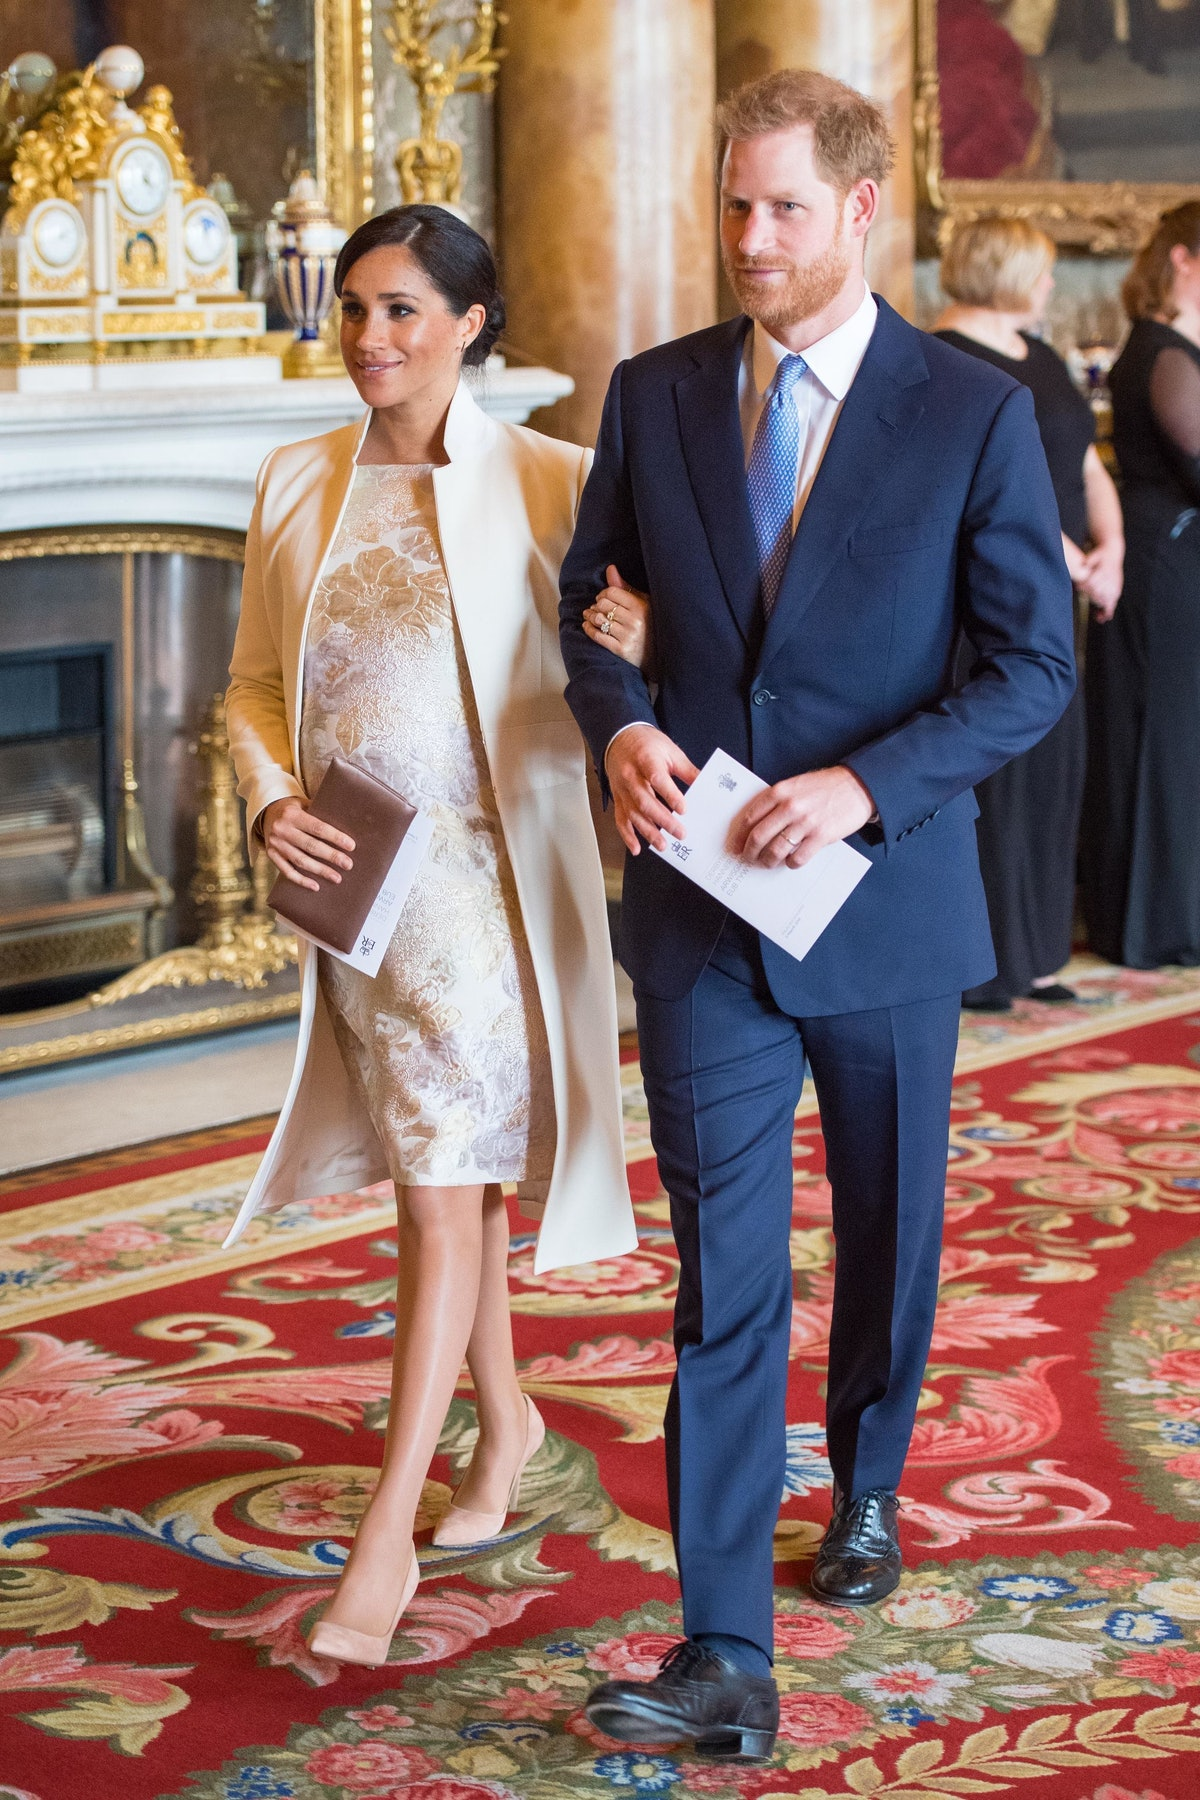 Britain's Prince Harry, Duke of Sussex, (R) and Britain's Meghan, Duchess of Sussex (L) attend a rec...